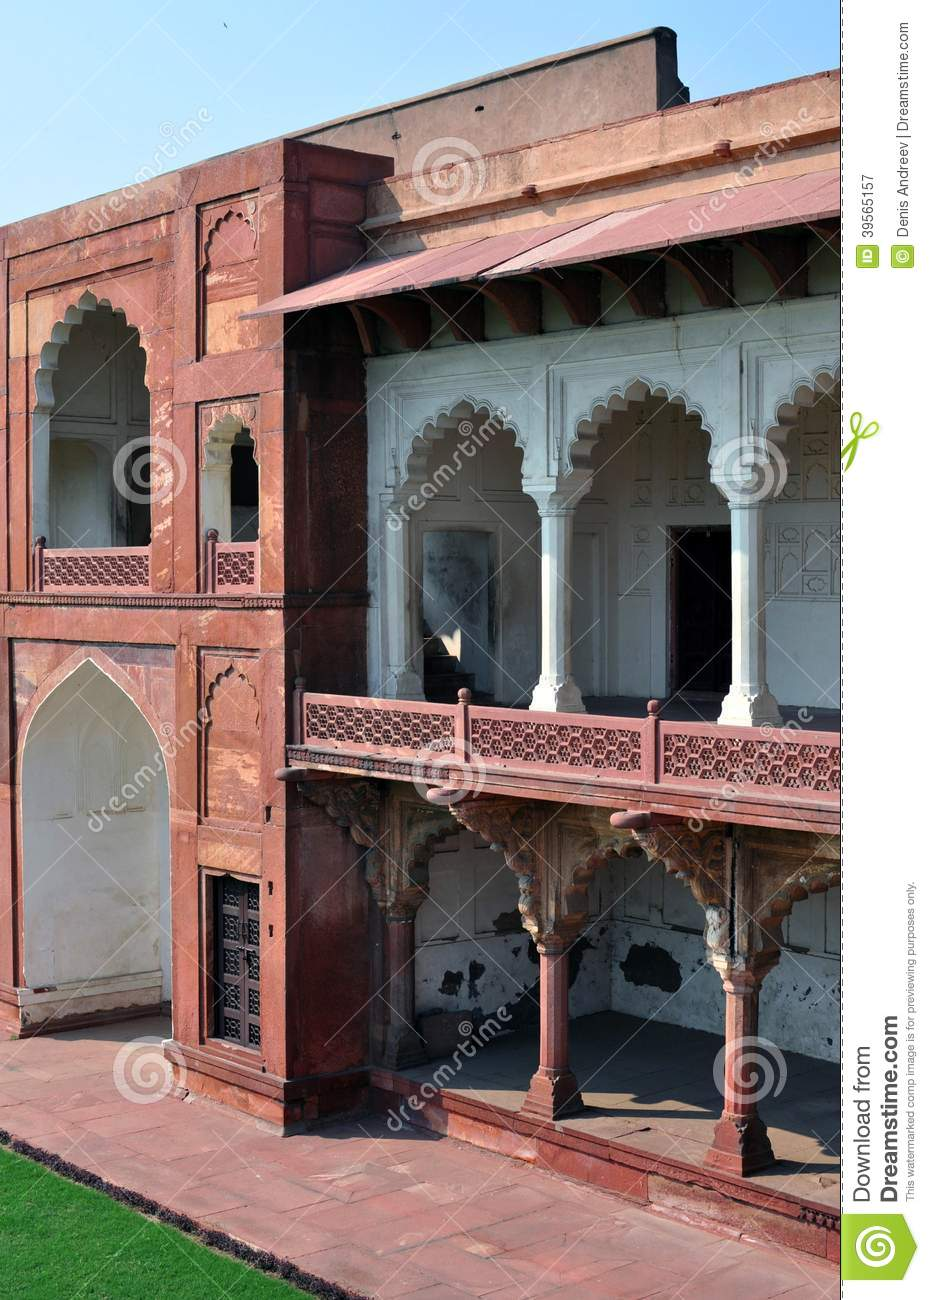 Agra fort.